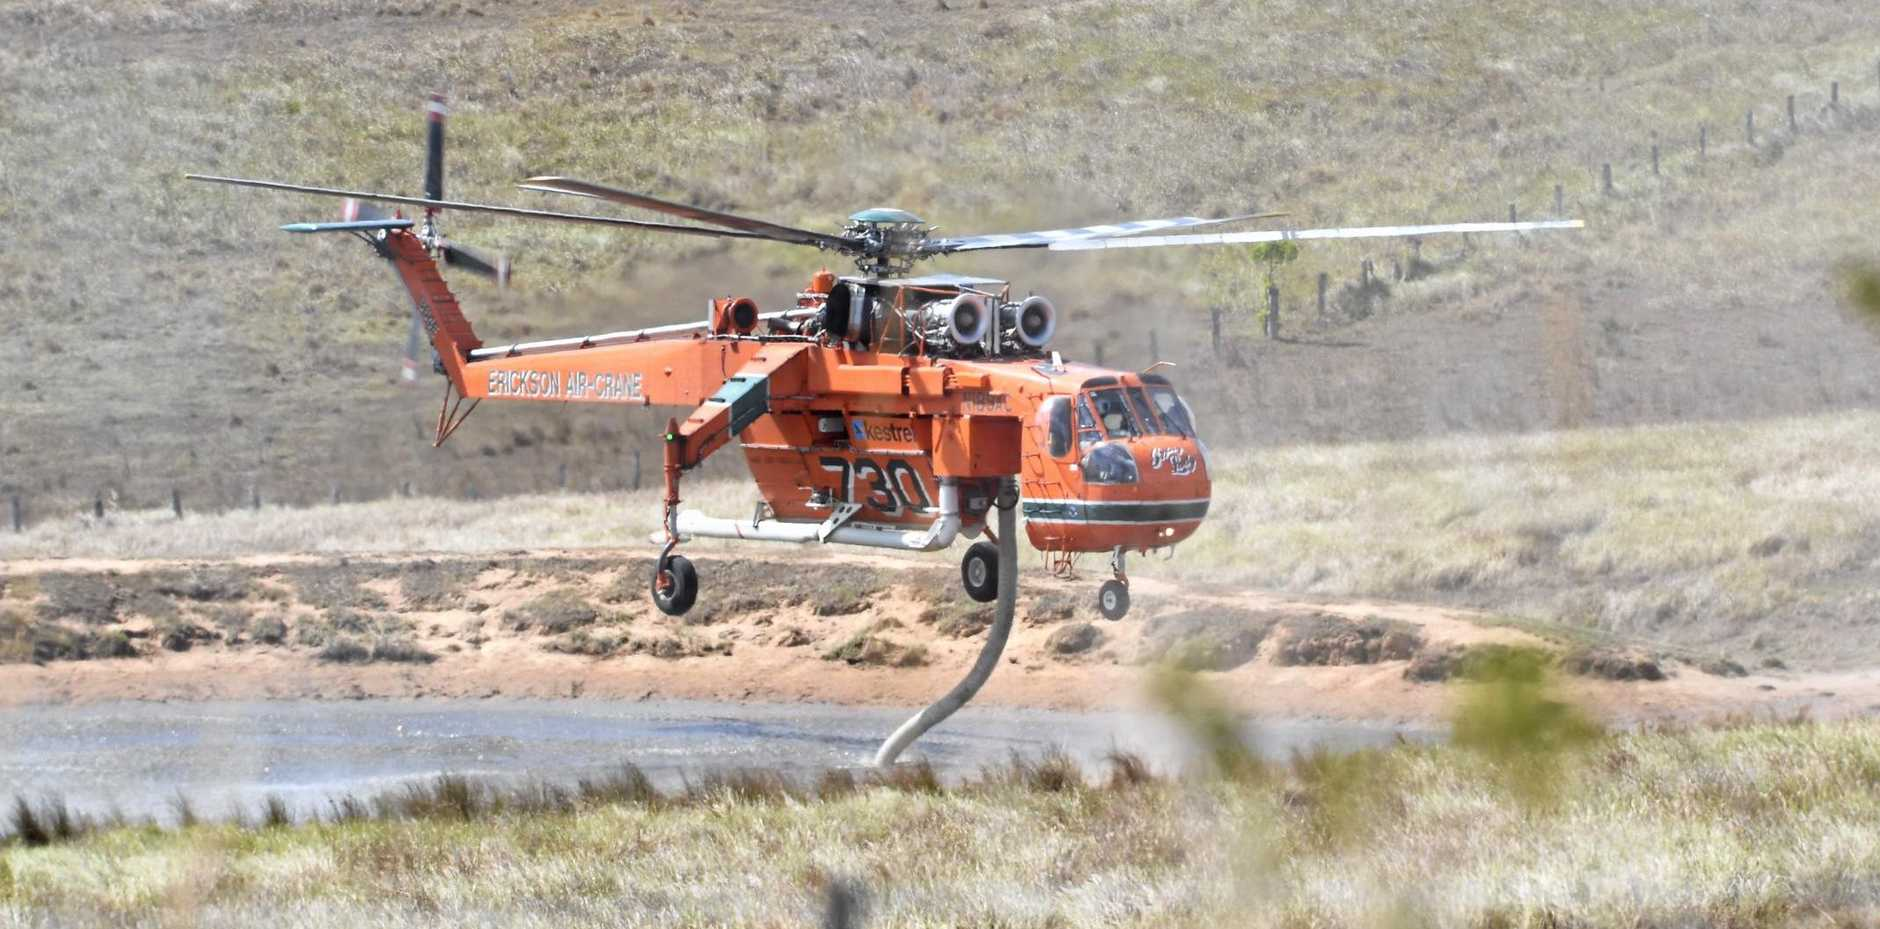 FIGHTING FIRES: The Elvis helicopter, which can hold 9,500 litres (2,500 US gal) of water, fills up for another drop. INSET TOP: Paula Avery with Rocky Laurie, 3 months, after being dropped off by buses back to Jumbullum Village following the fires. INSET BOTTOM: Fire trucks patrol the parched earth around Tabulam.